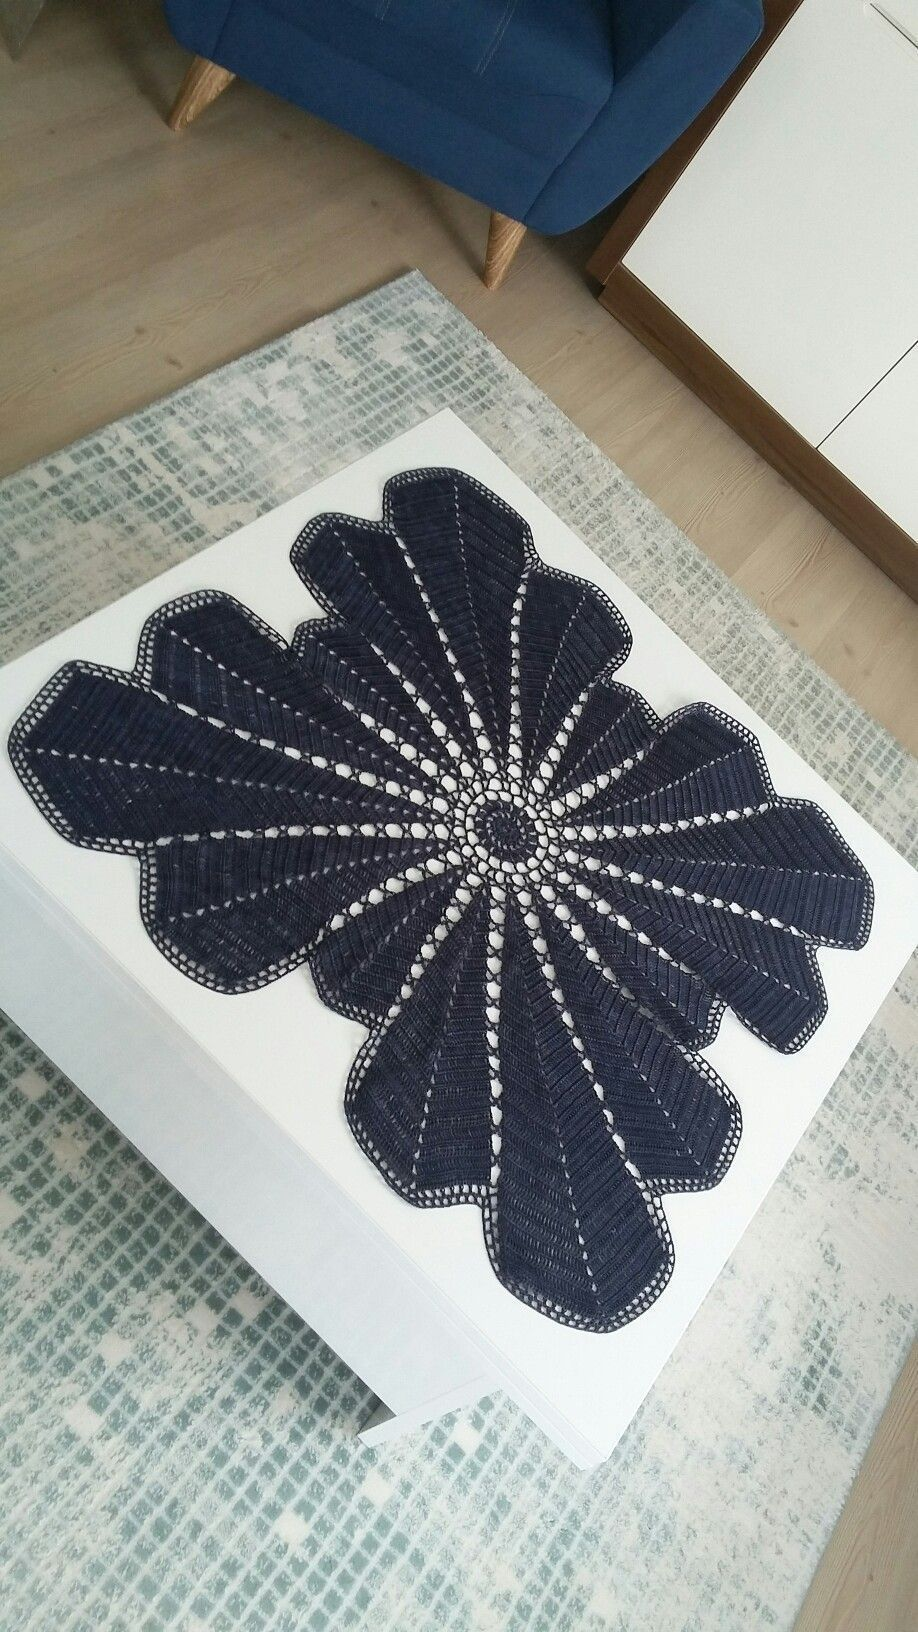 Feathers of Pharaohs pattern by 10 Hours or Less - MommyGrid.com